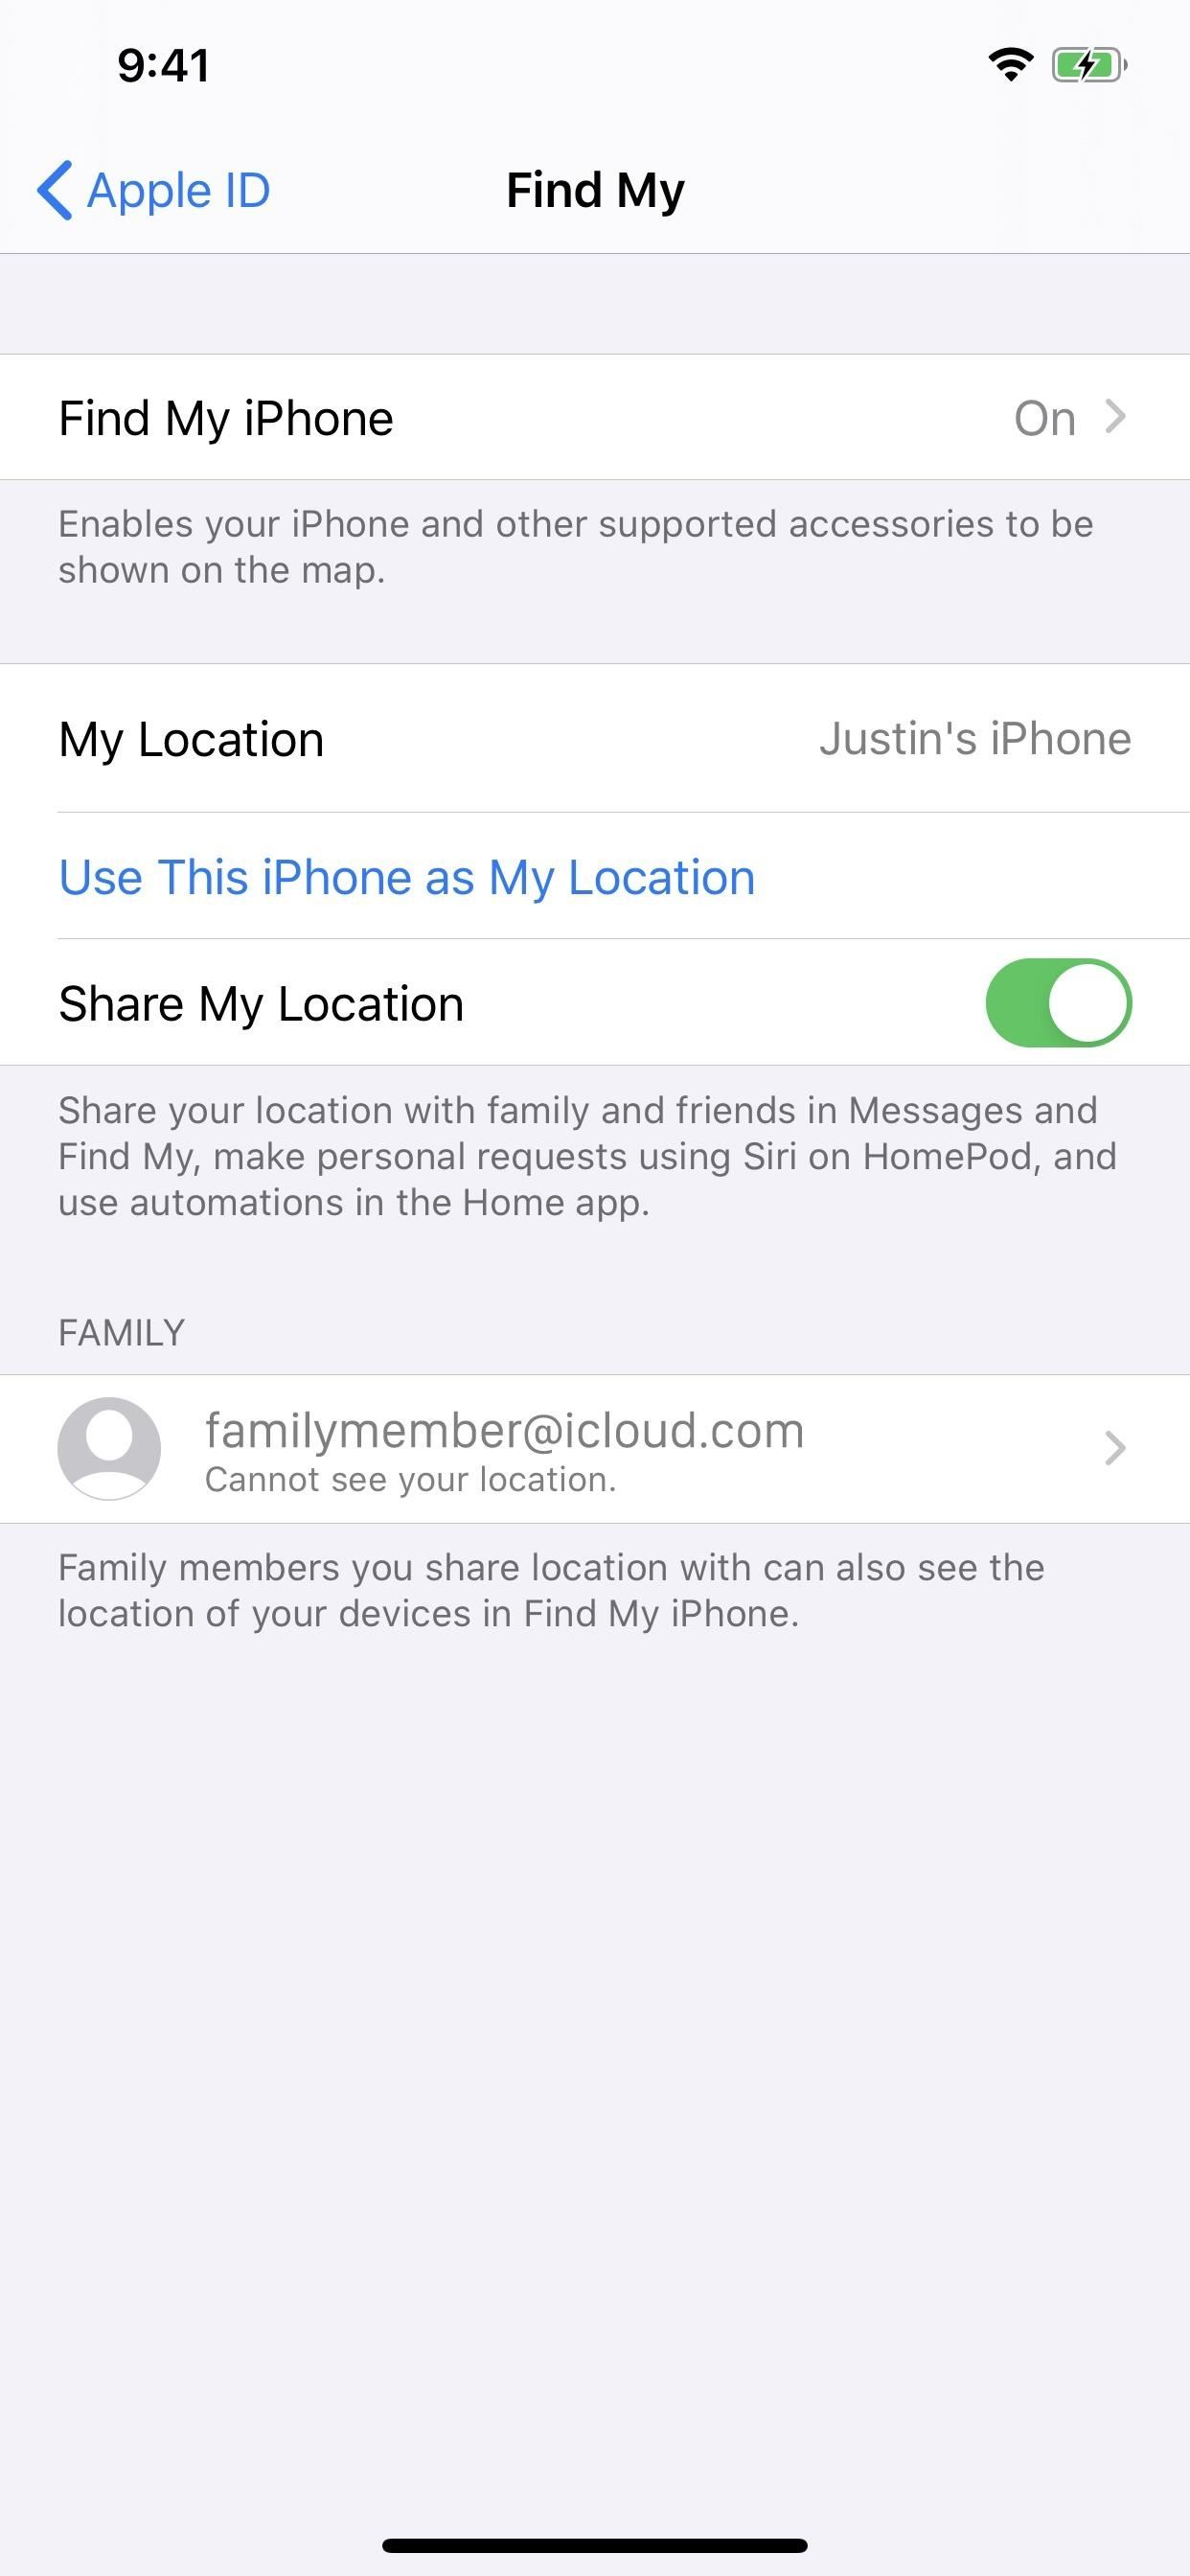 Everything You Need to Know About Find My - iOS 13's New App to Find My iPhone and Find My Friends